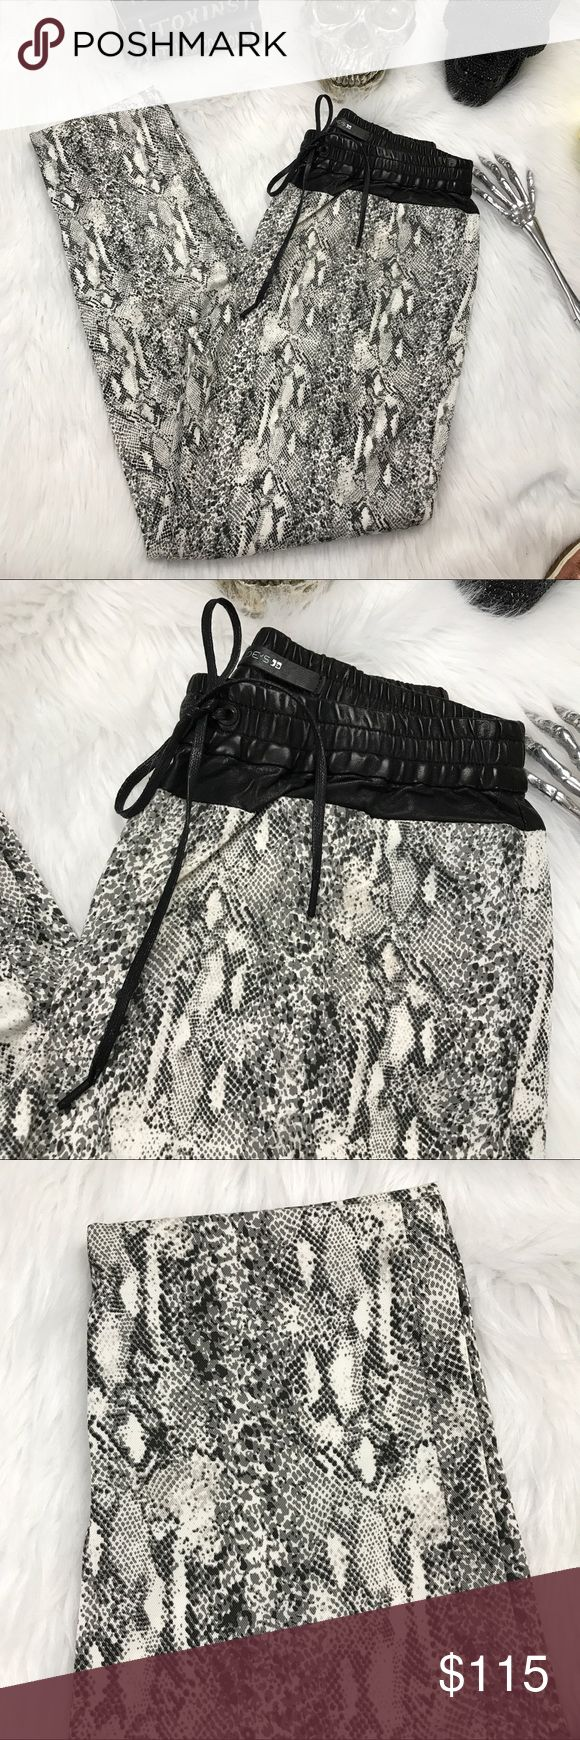 Joe's The Rocker snake skin leather joggers Holy hotness ! Part of Joe's Off Duty Collection, The Rocky Jogger in Python Snake Print is a low rise, drawstring jogger pant in a lightweight, comfort stretch denim with a python print and super soft hand feel